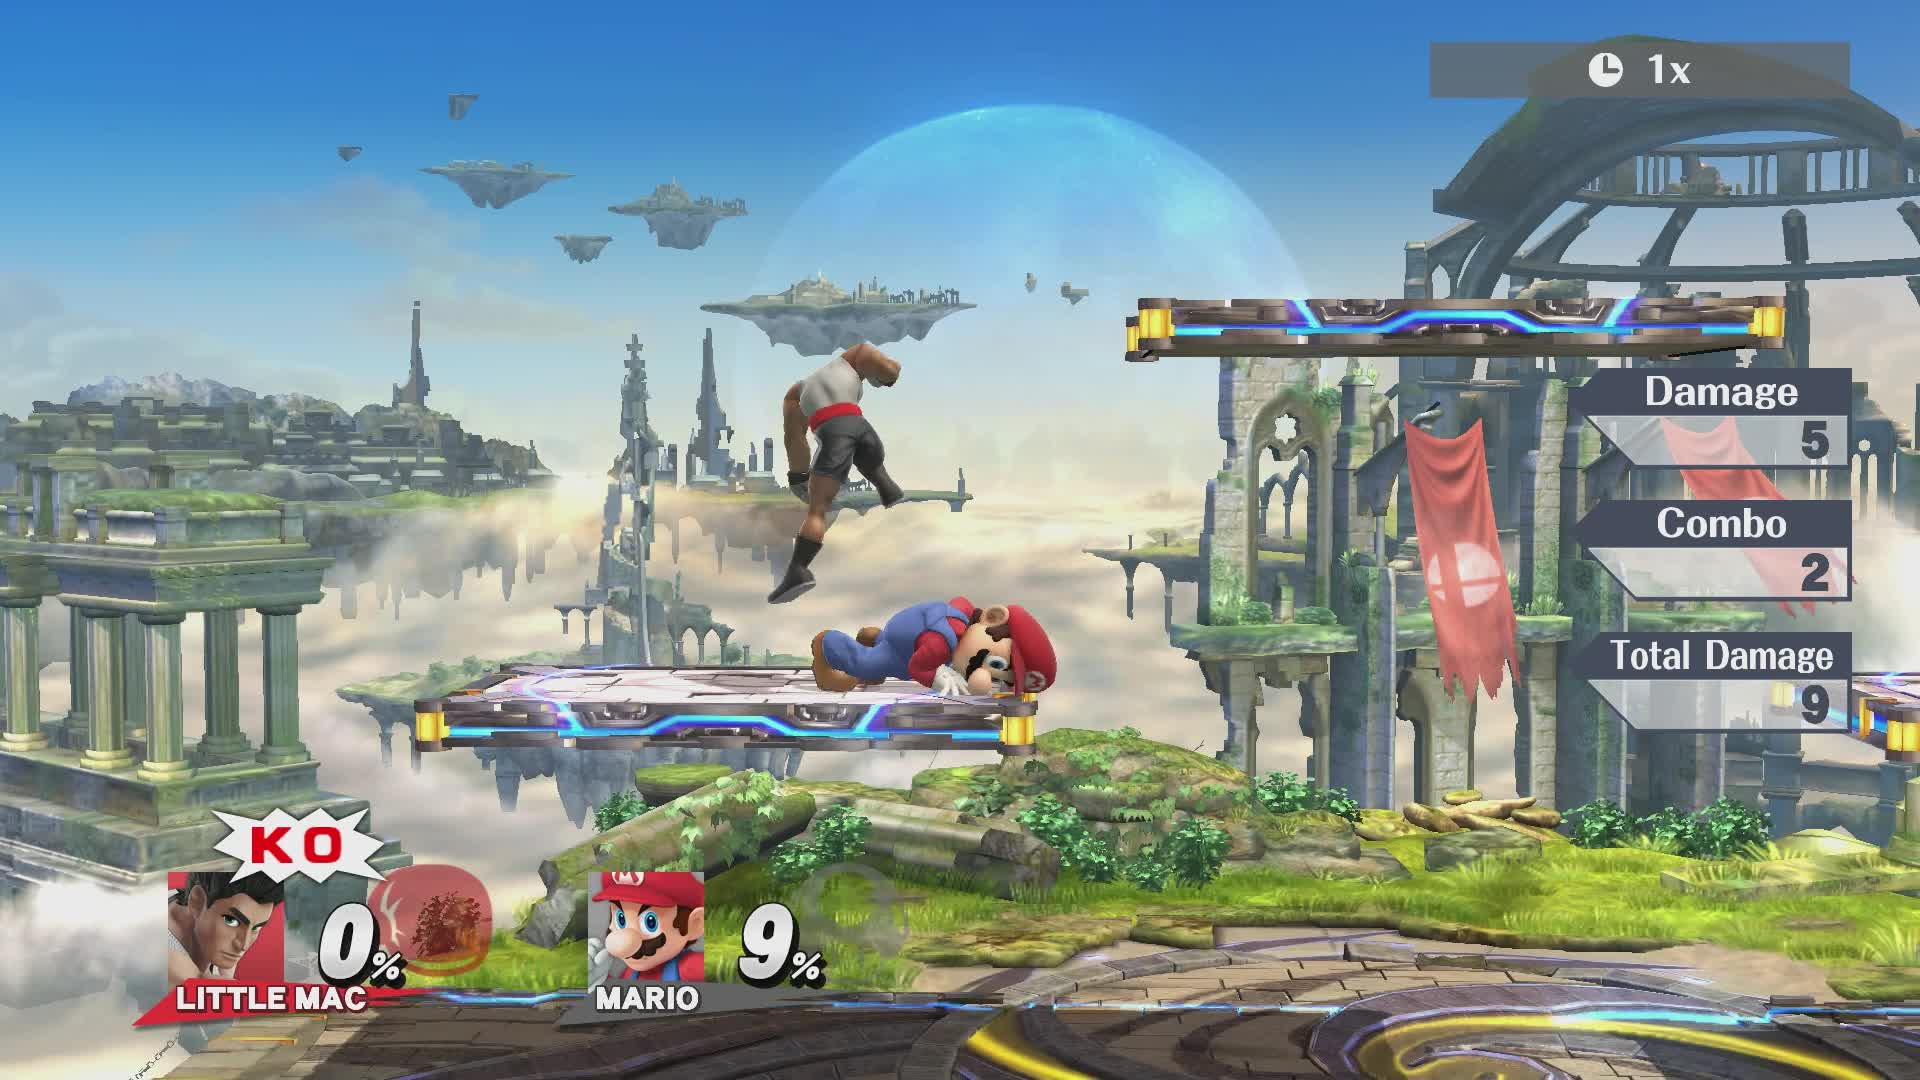 Super Smash Bros for Wii U - My Great Capture - 2018-06-11 01-03-12 GIFs